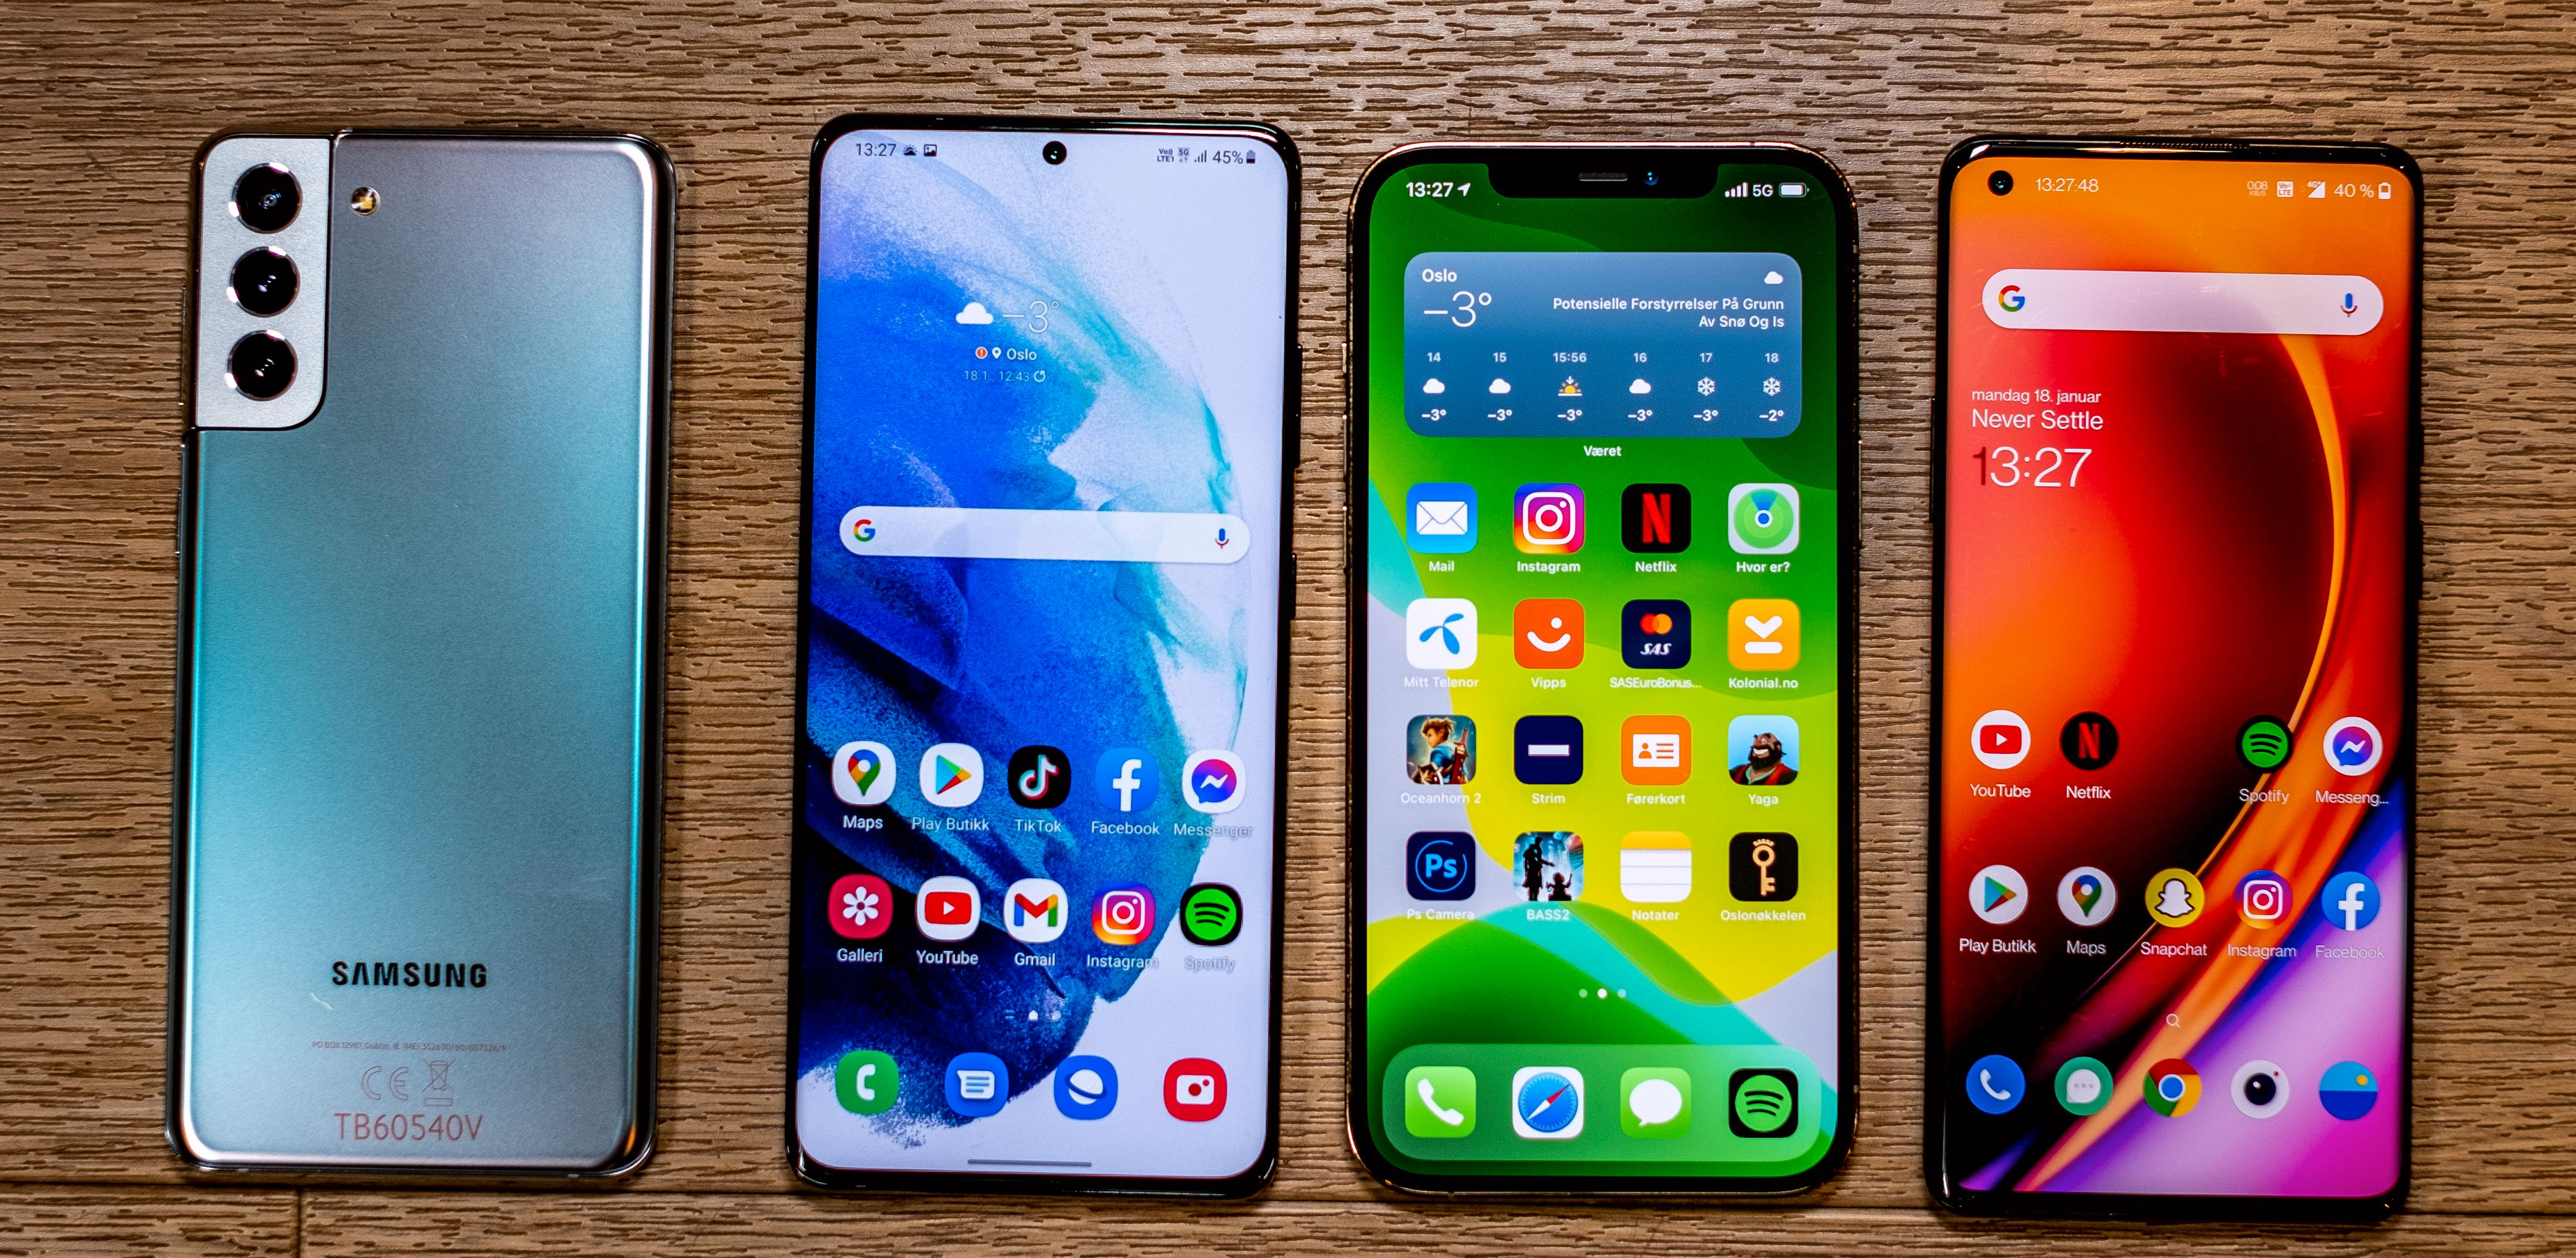 Fra venstre: Galaxy S21+, Galaxy S21 Ultra, iPhone 12 Pro Max, OnePlus 8 Pro.